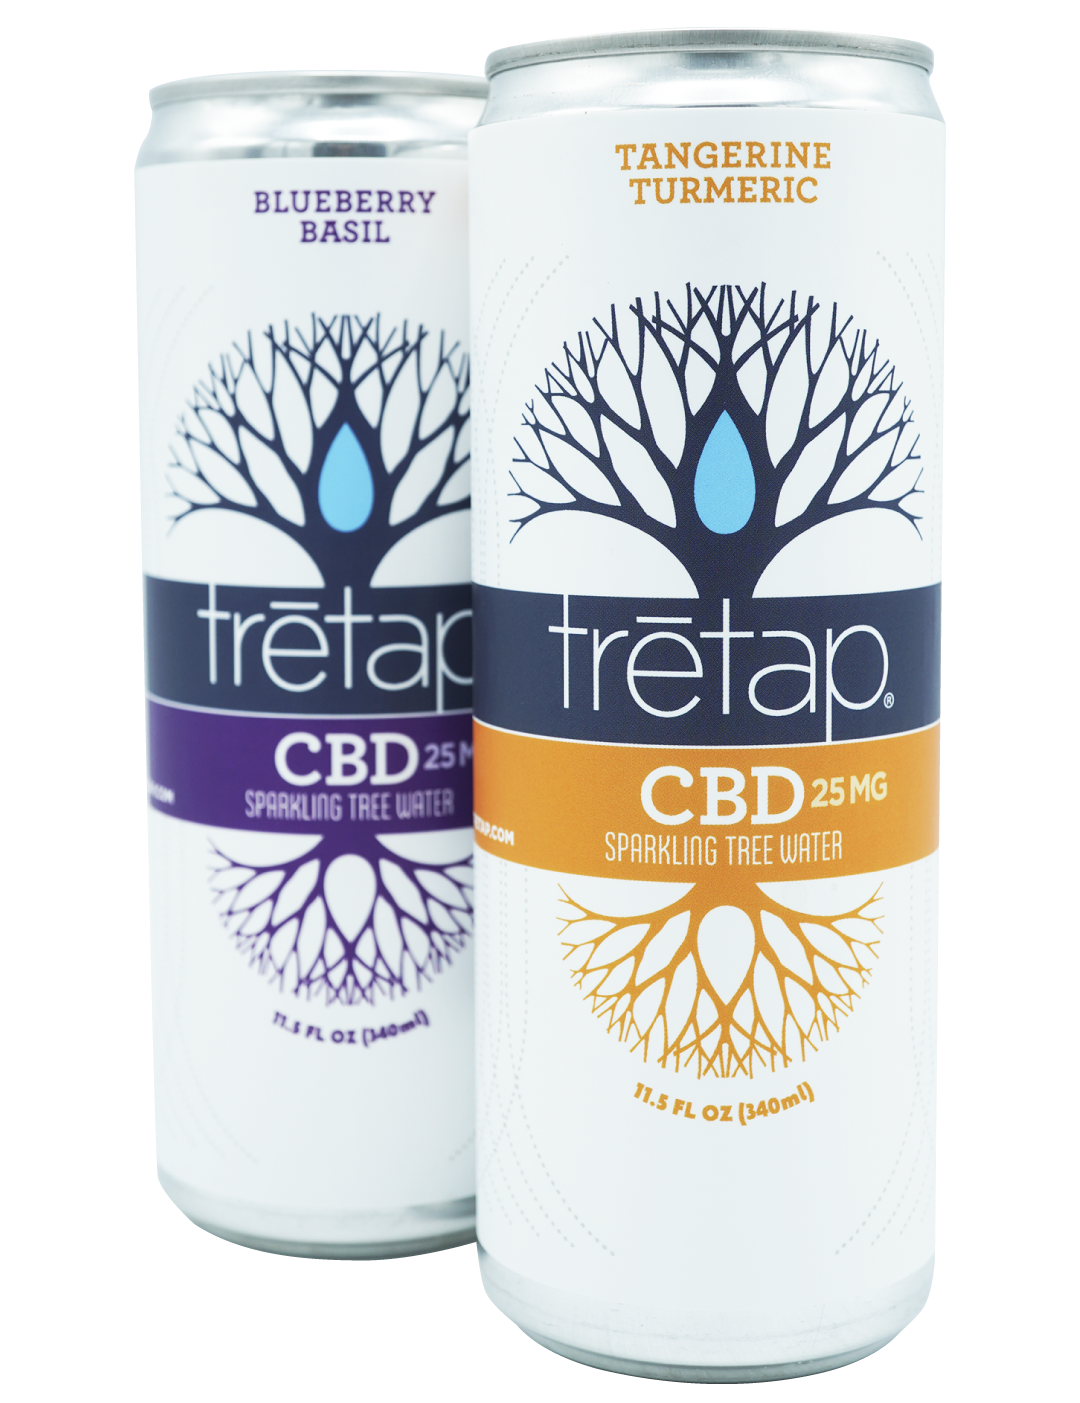 CBD infused, organic, sparkling tree water. A delicious low calorie, low sugar alternative to soda contains 25mg of CBD. CBD drink made in Vermont.